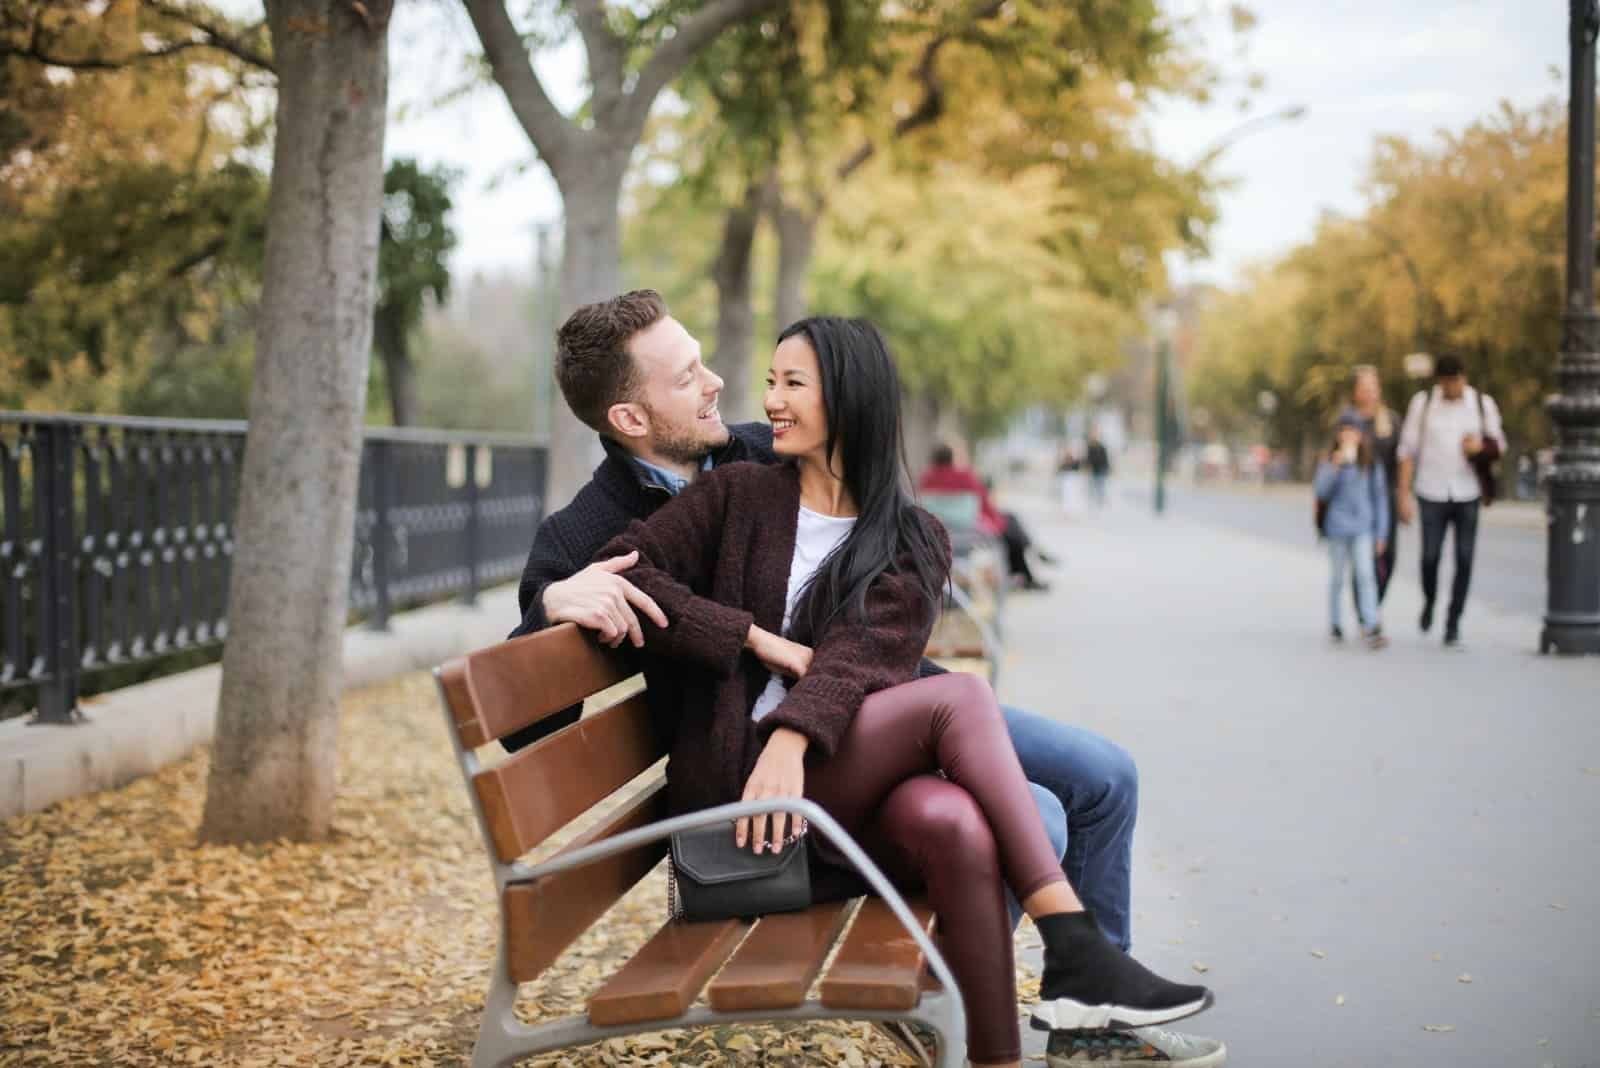 man and woman making eye contact while sitting on bench